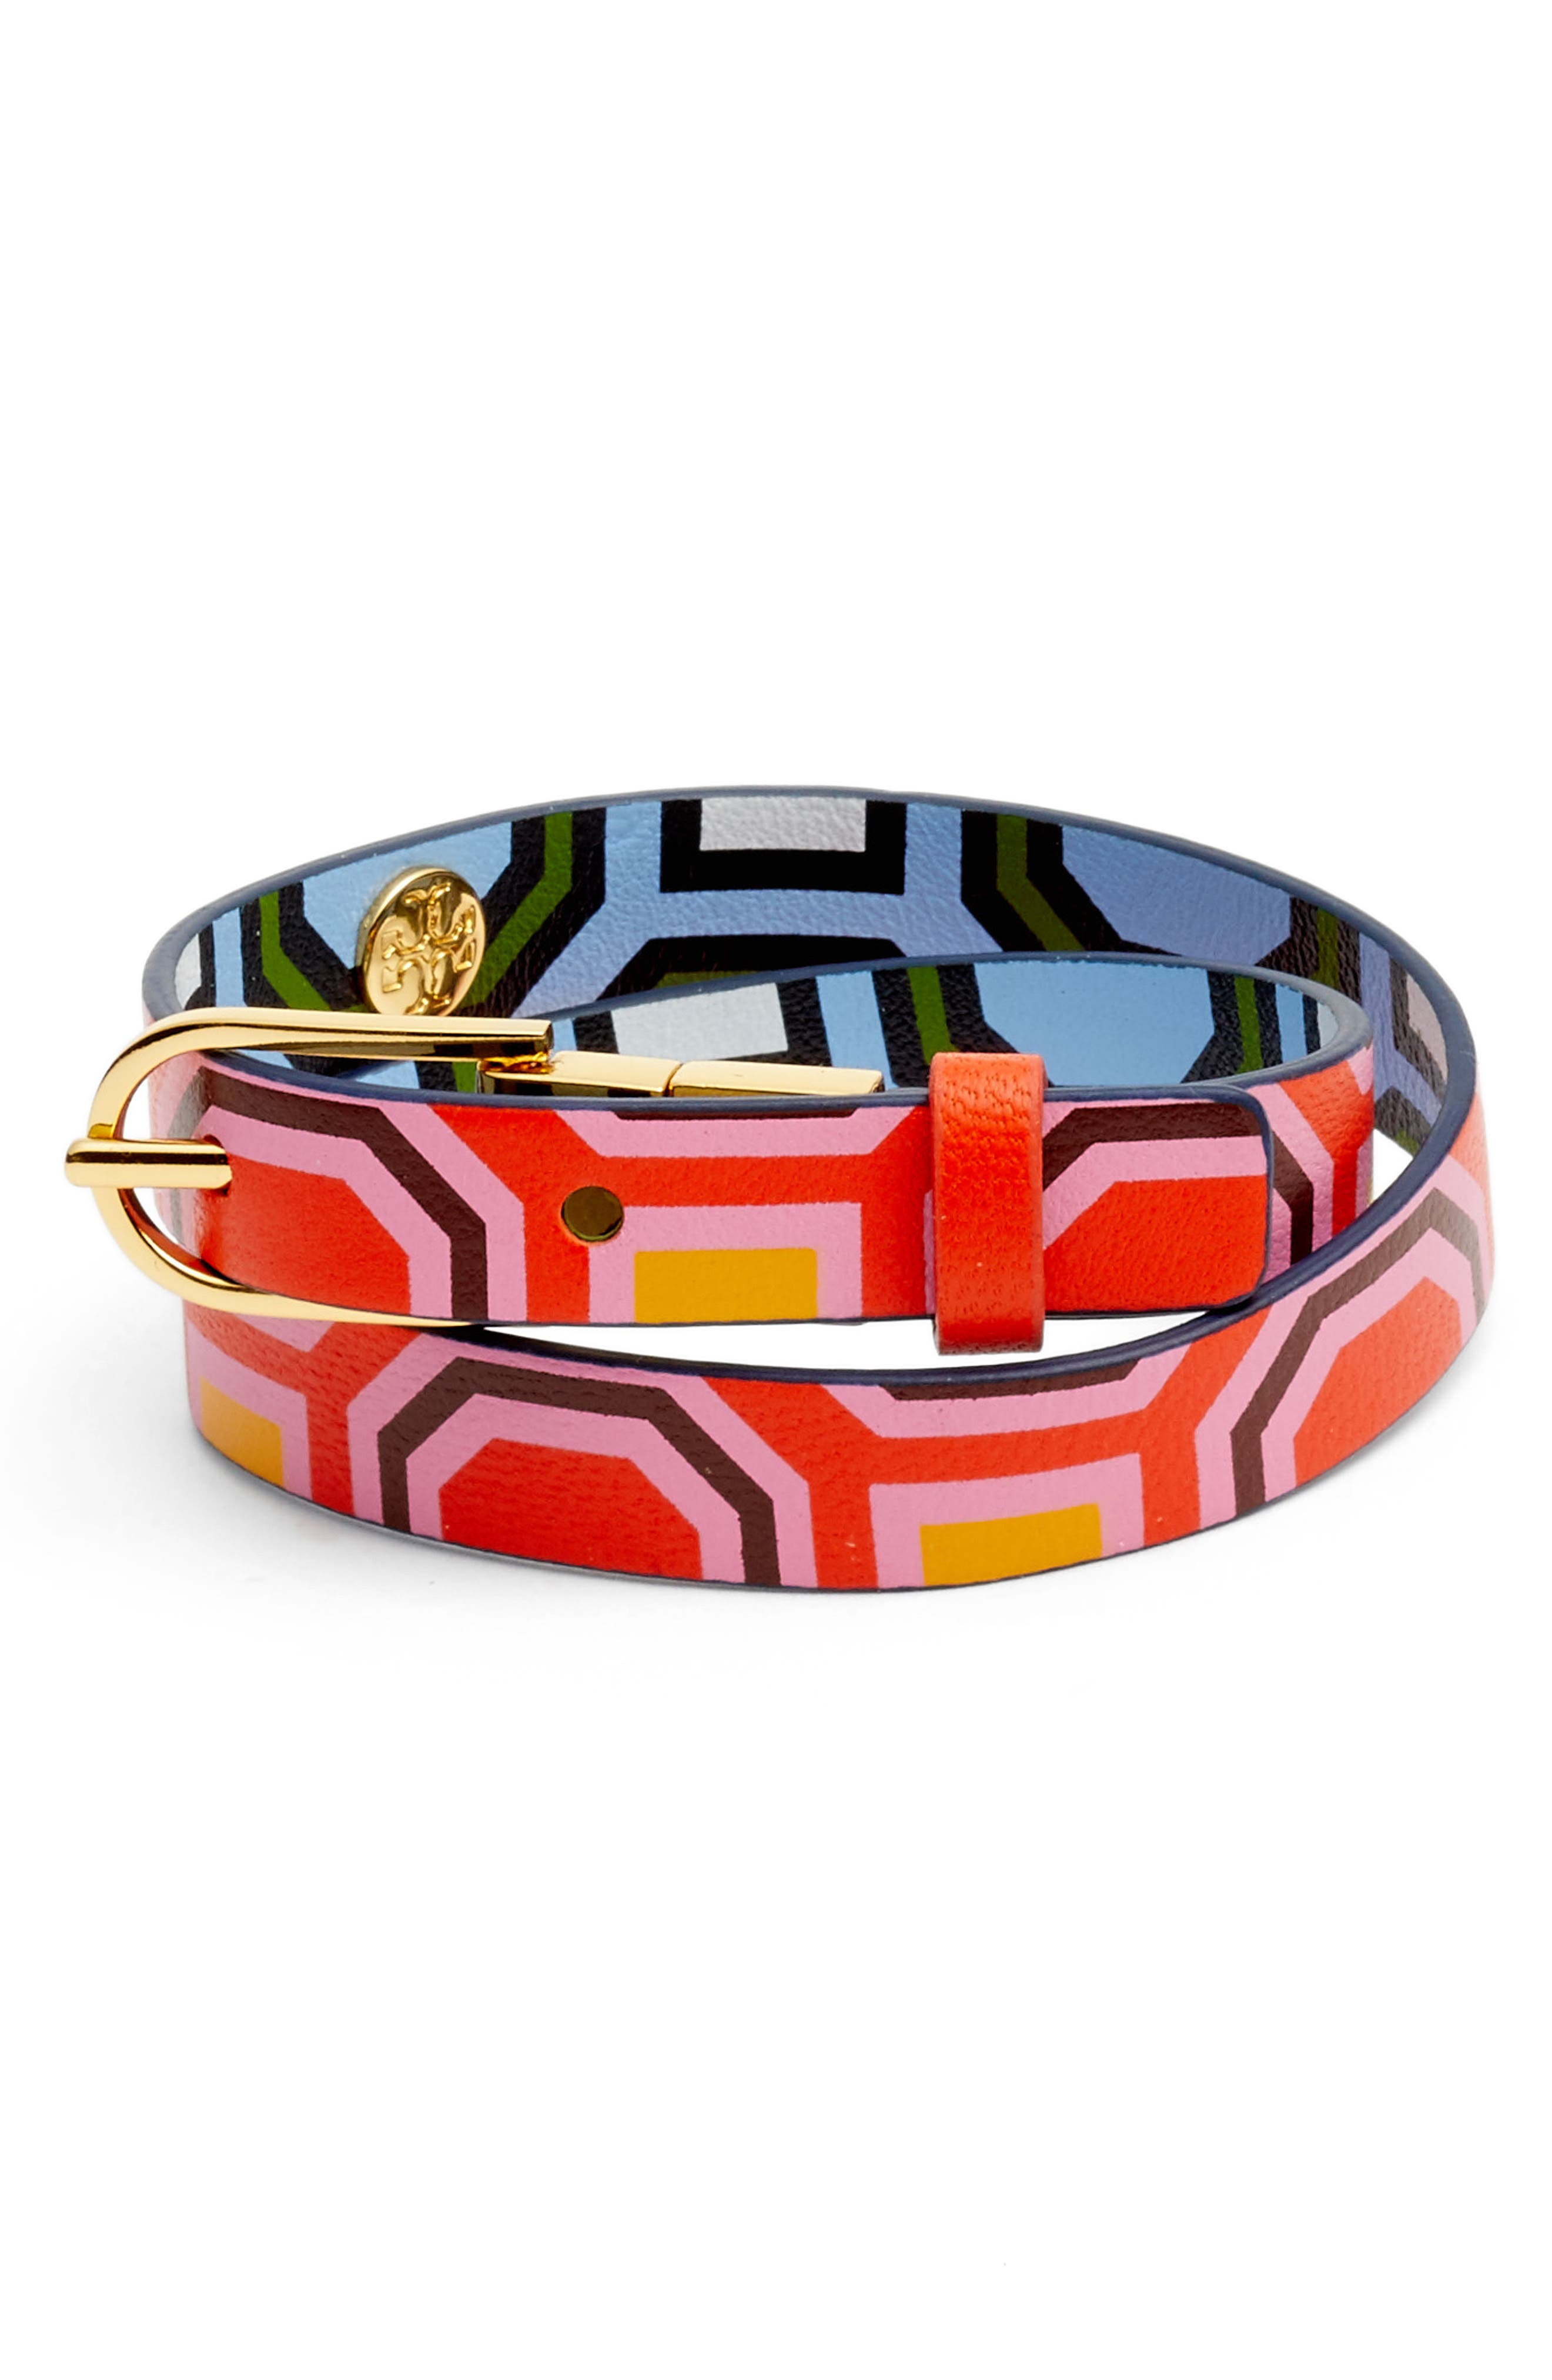 Reversible Leather Double Wrap Bracelet,                             Main thumbnail 1, color,                             Octagon Square Multi